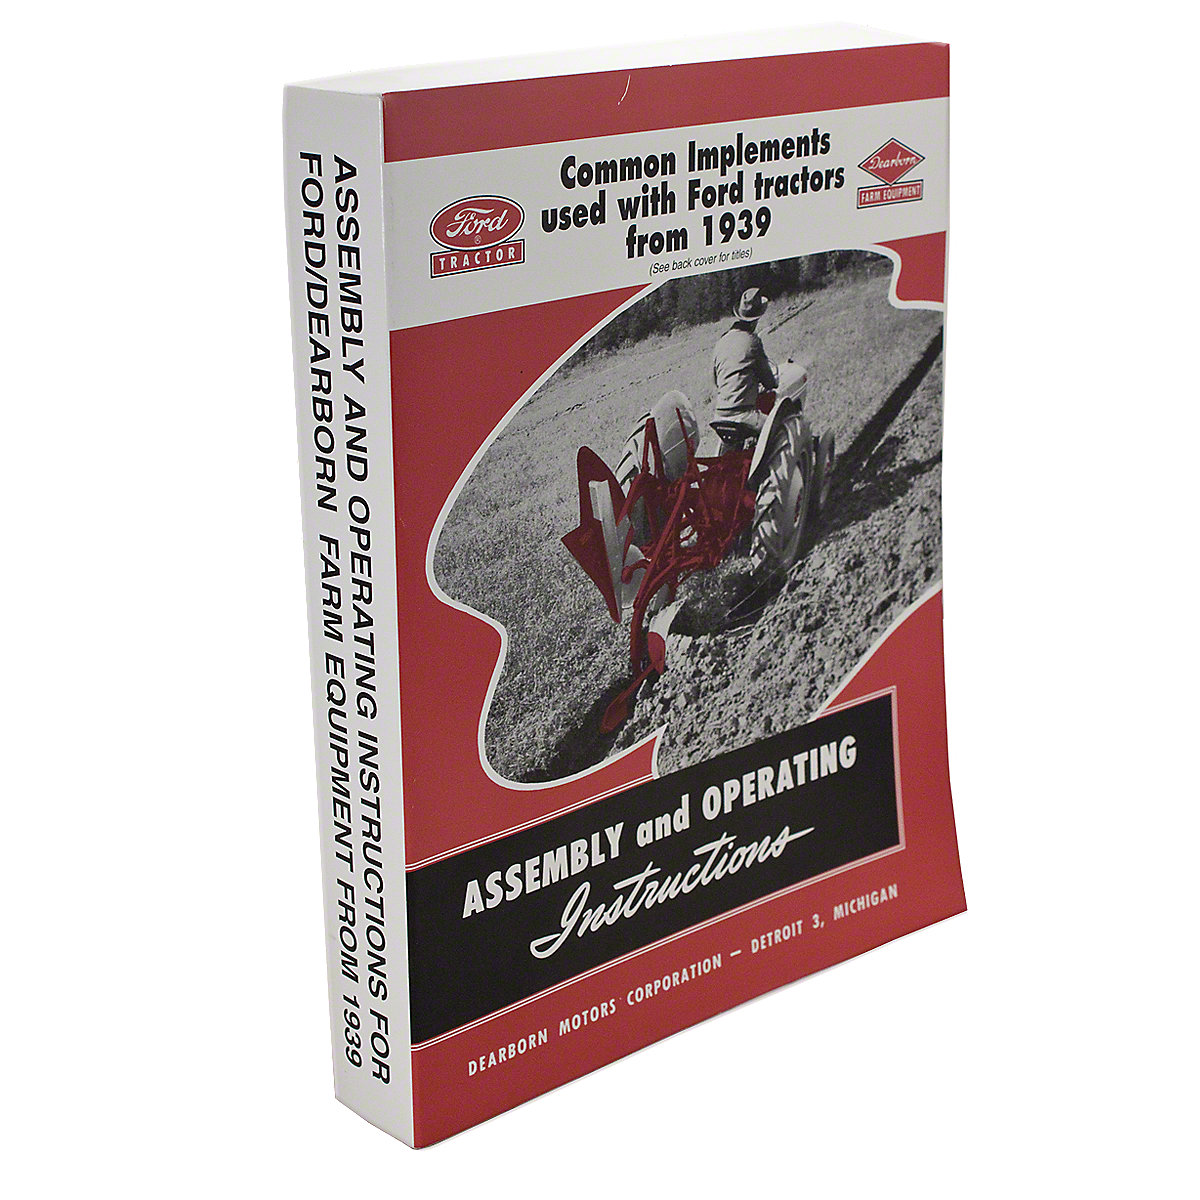 REP1342 Assembly And Operating Instructions For Ford / Dearborn Farm Equipment From 1939 And Up